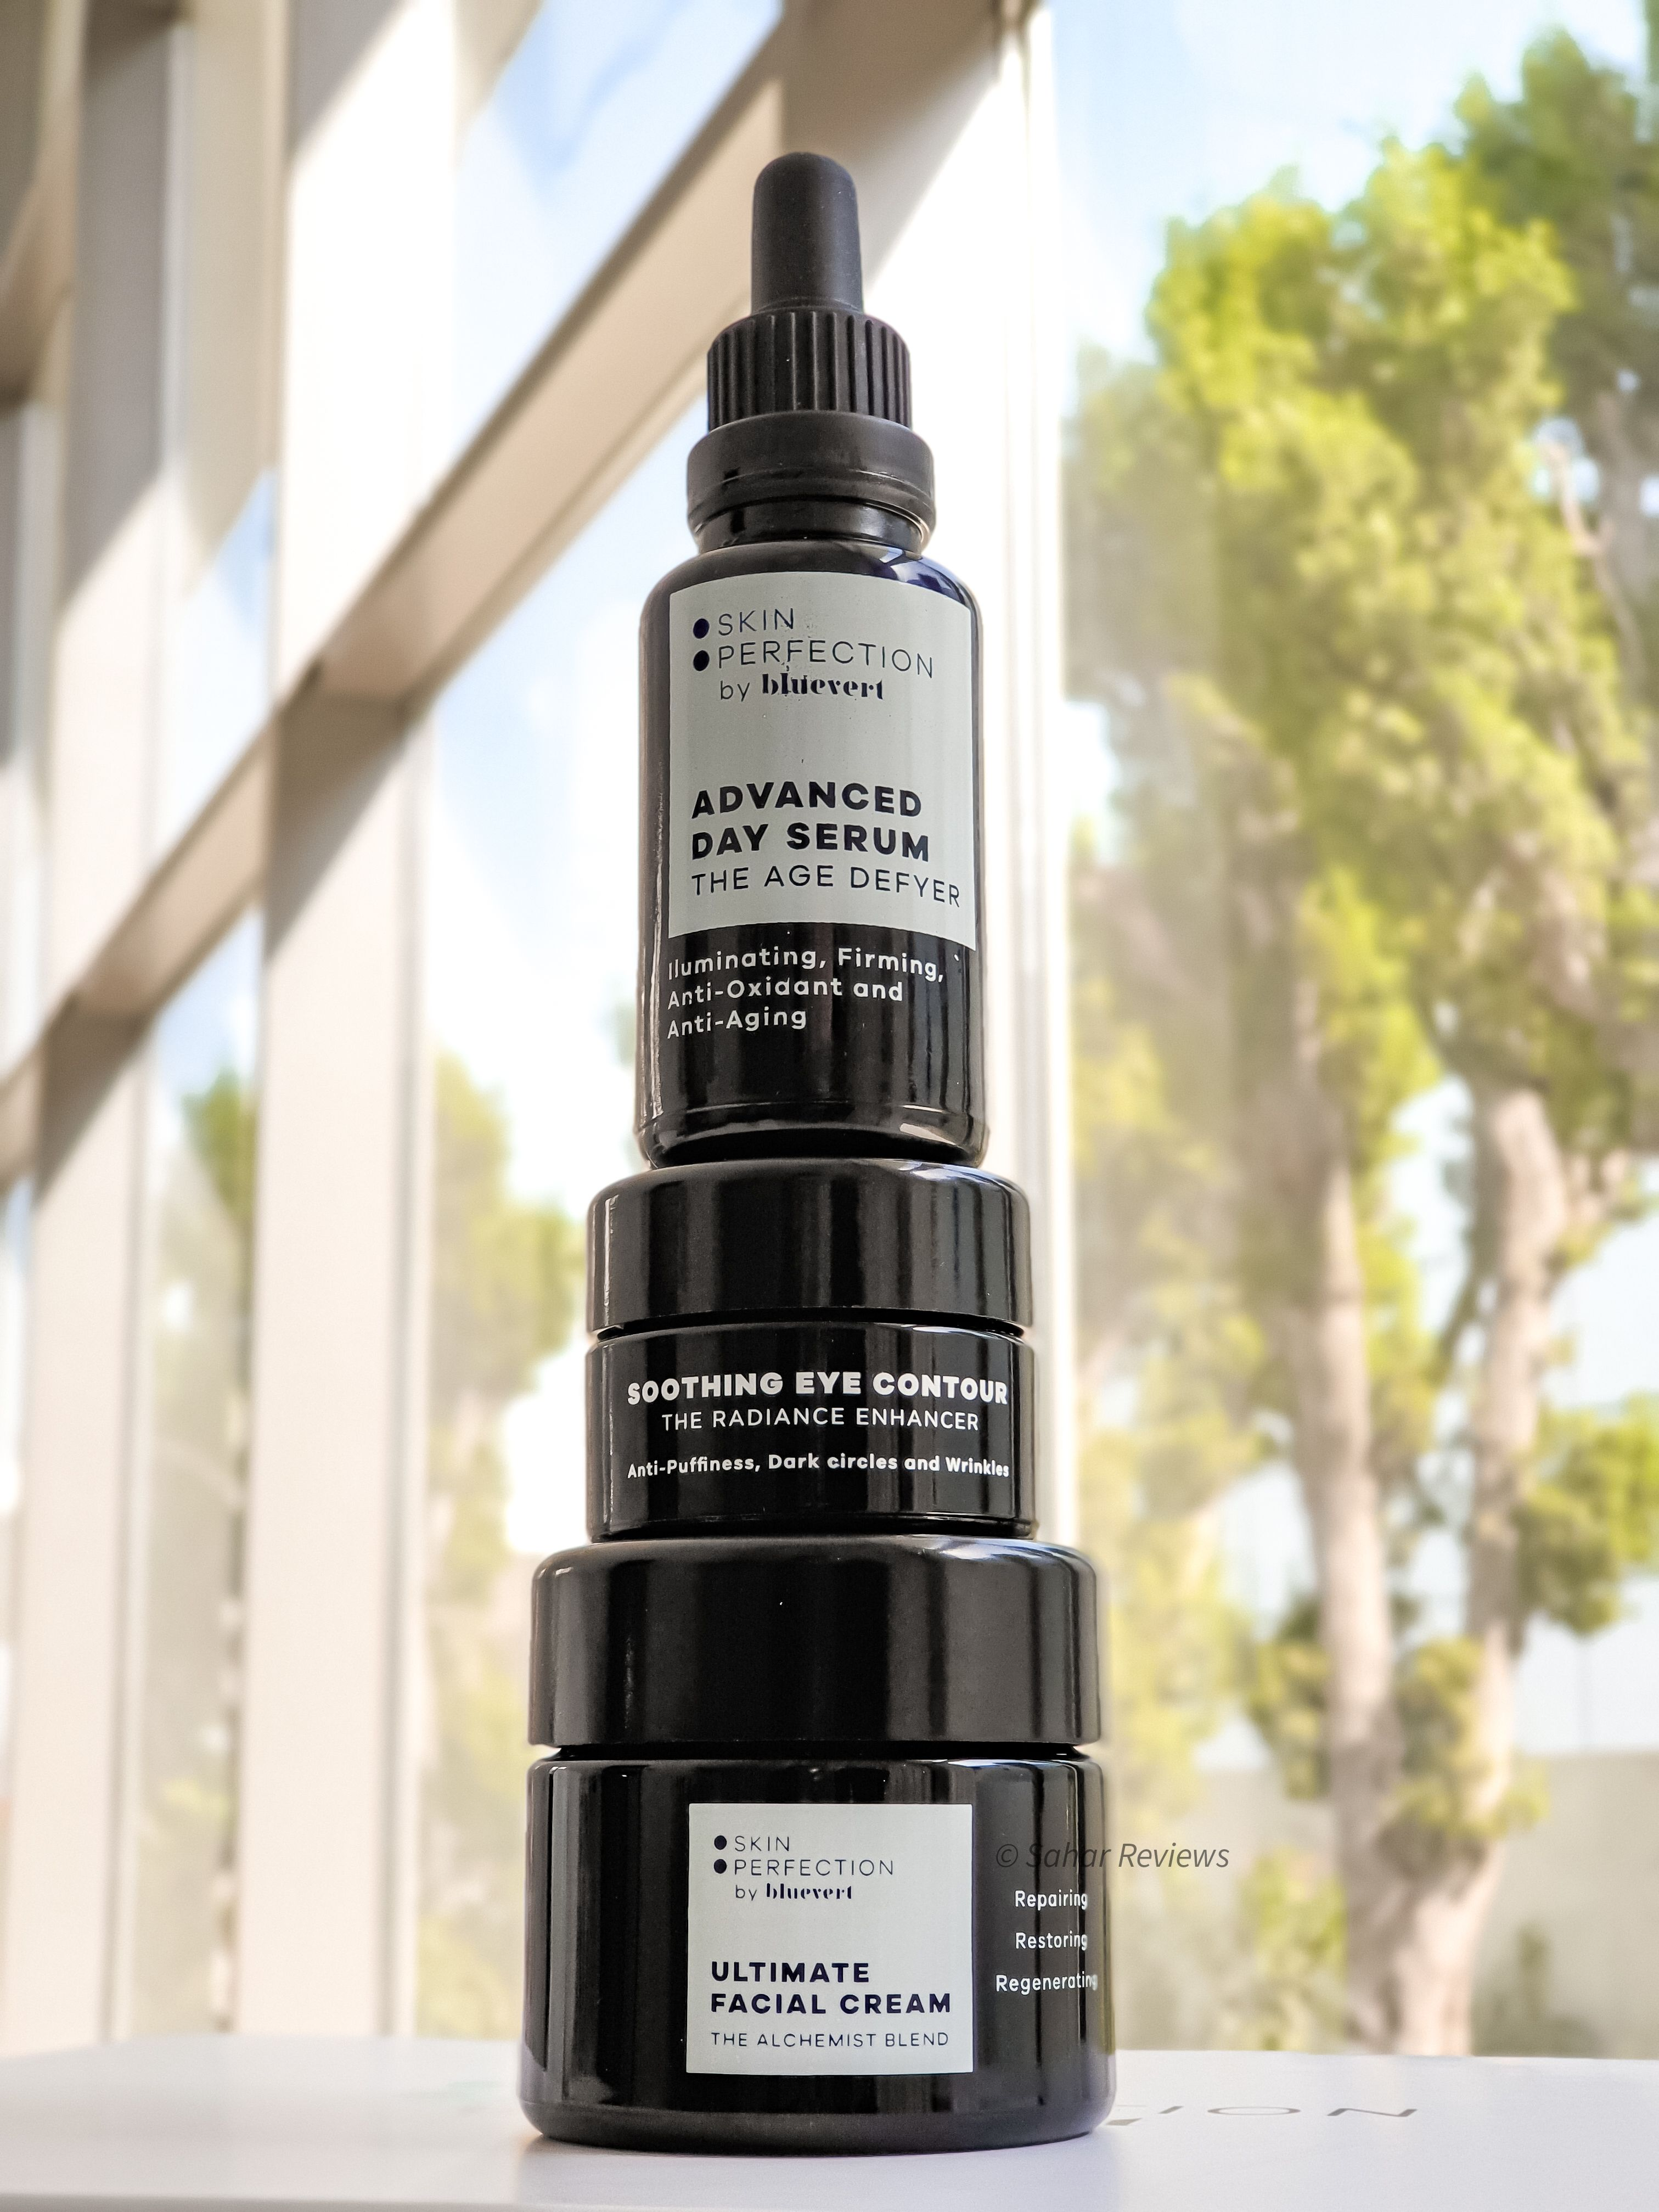 Advanced Day Serum by Skin Perfection